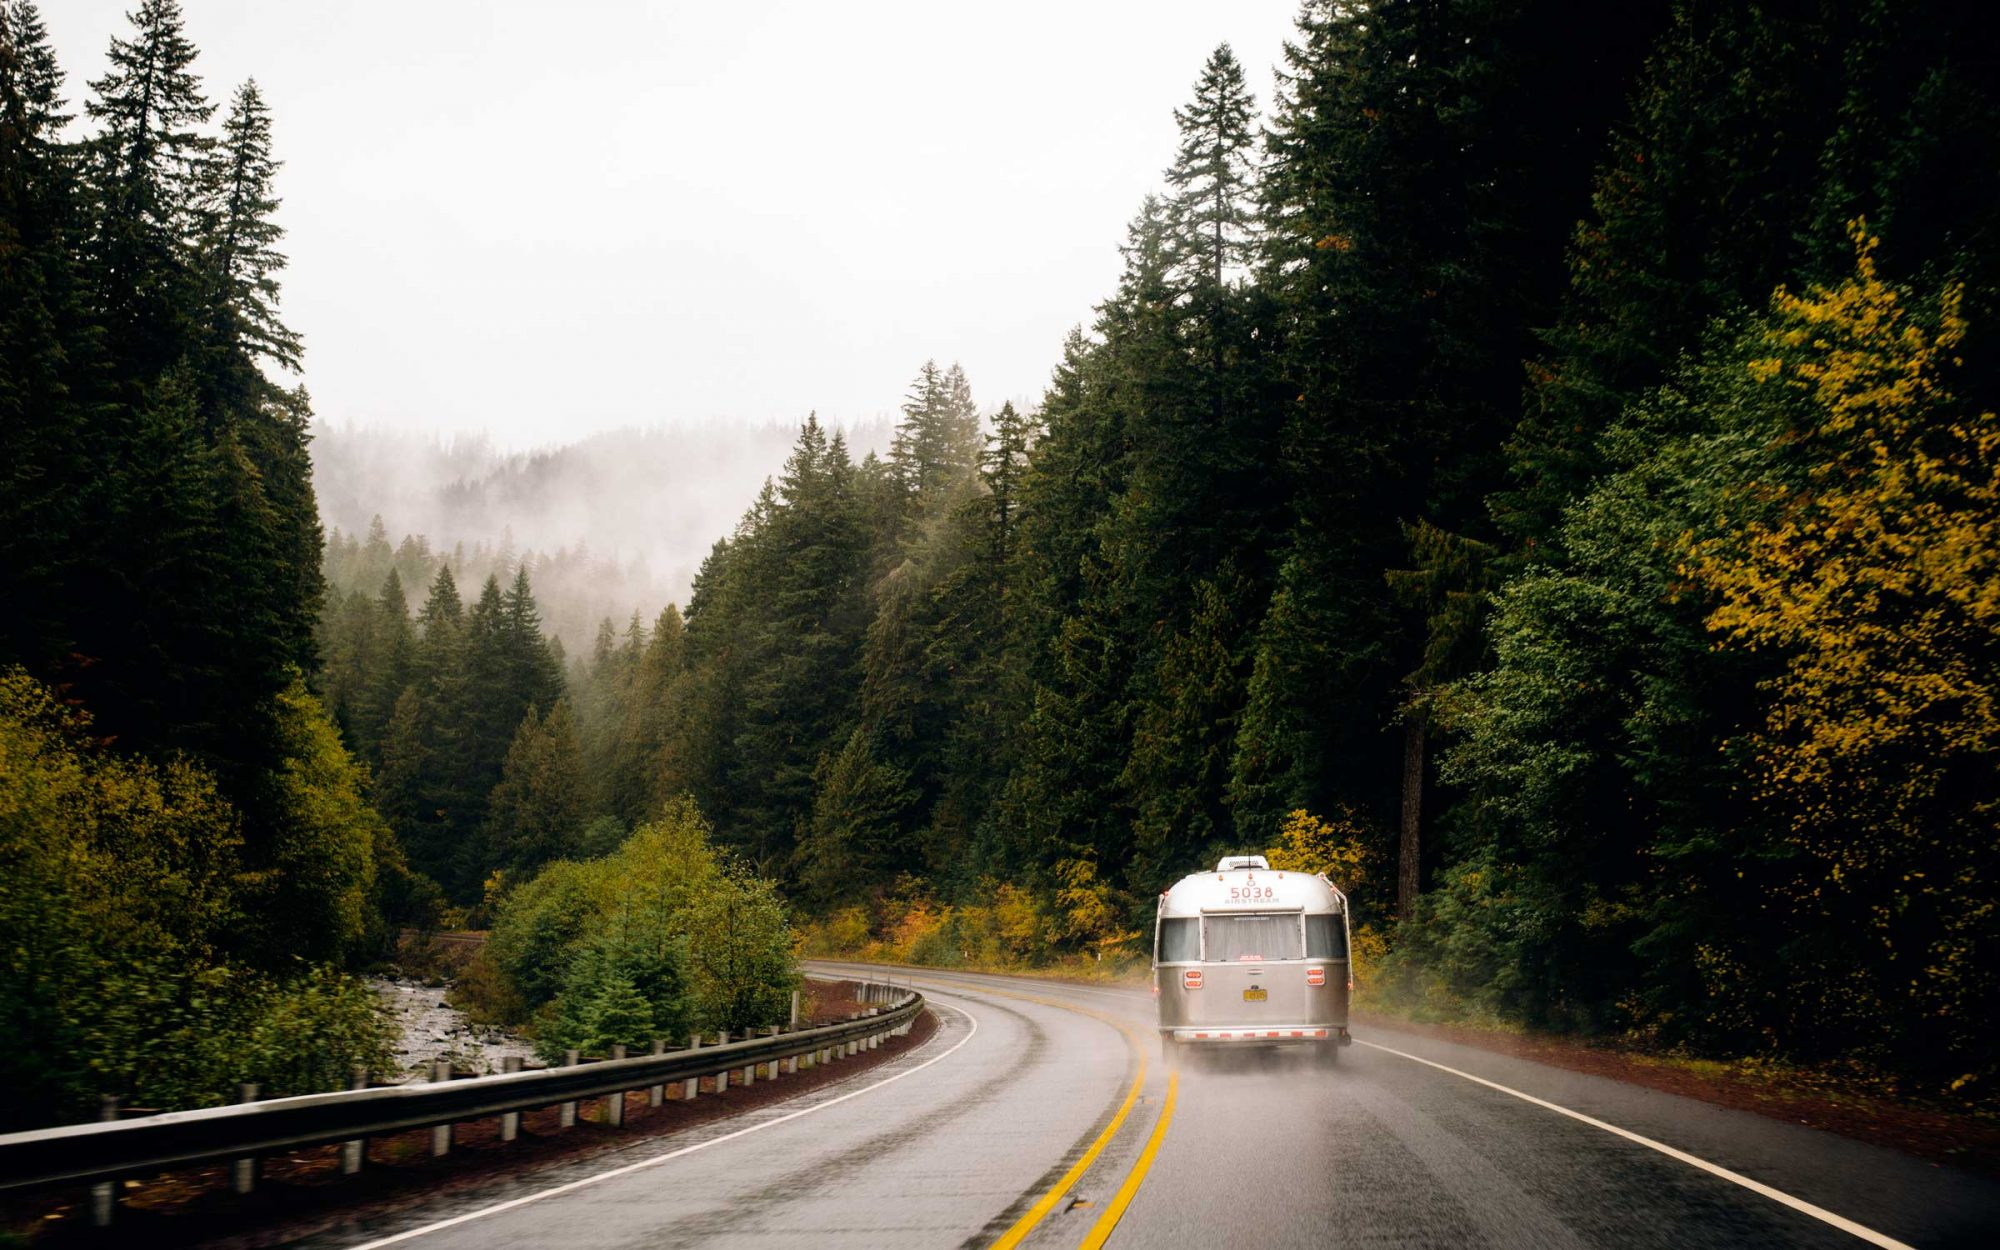 Beer Spas, Nude Hot Springs, Forest Lodges and Other Wonders of an Oregon Road Trip